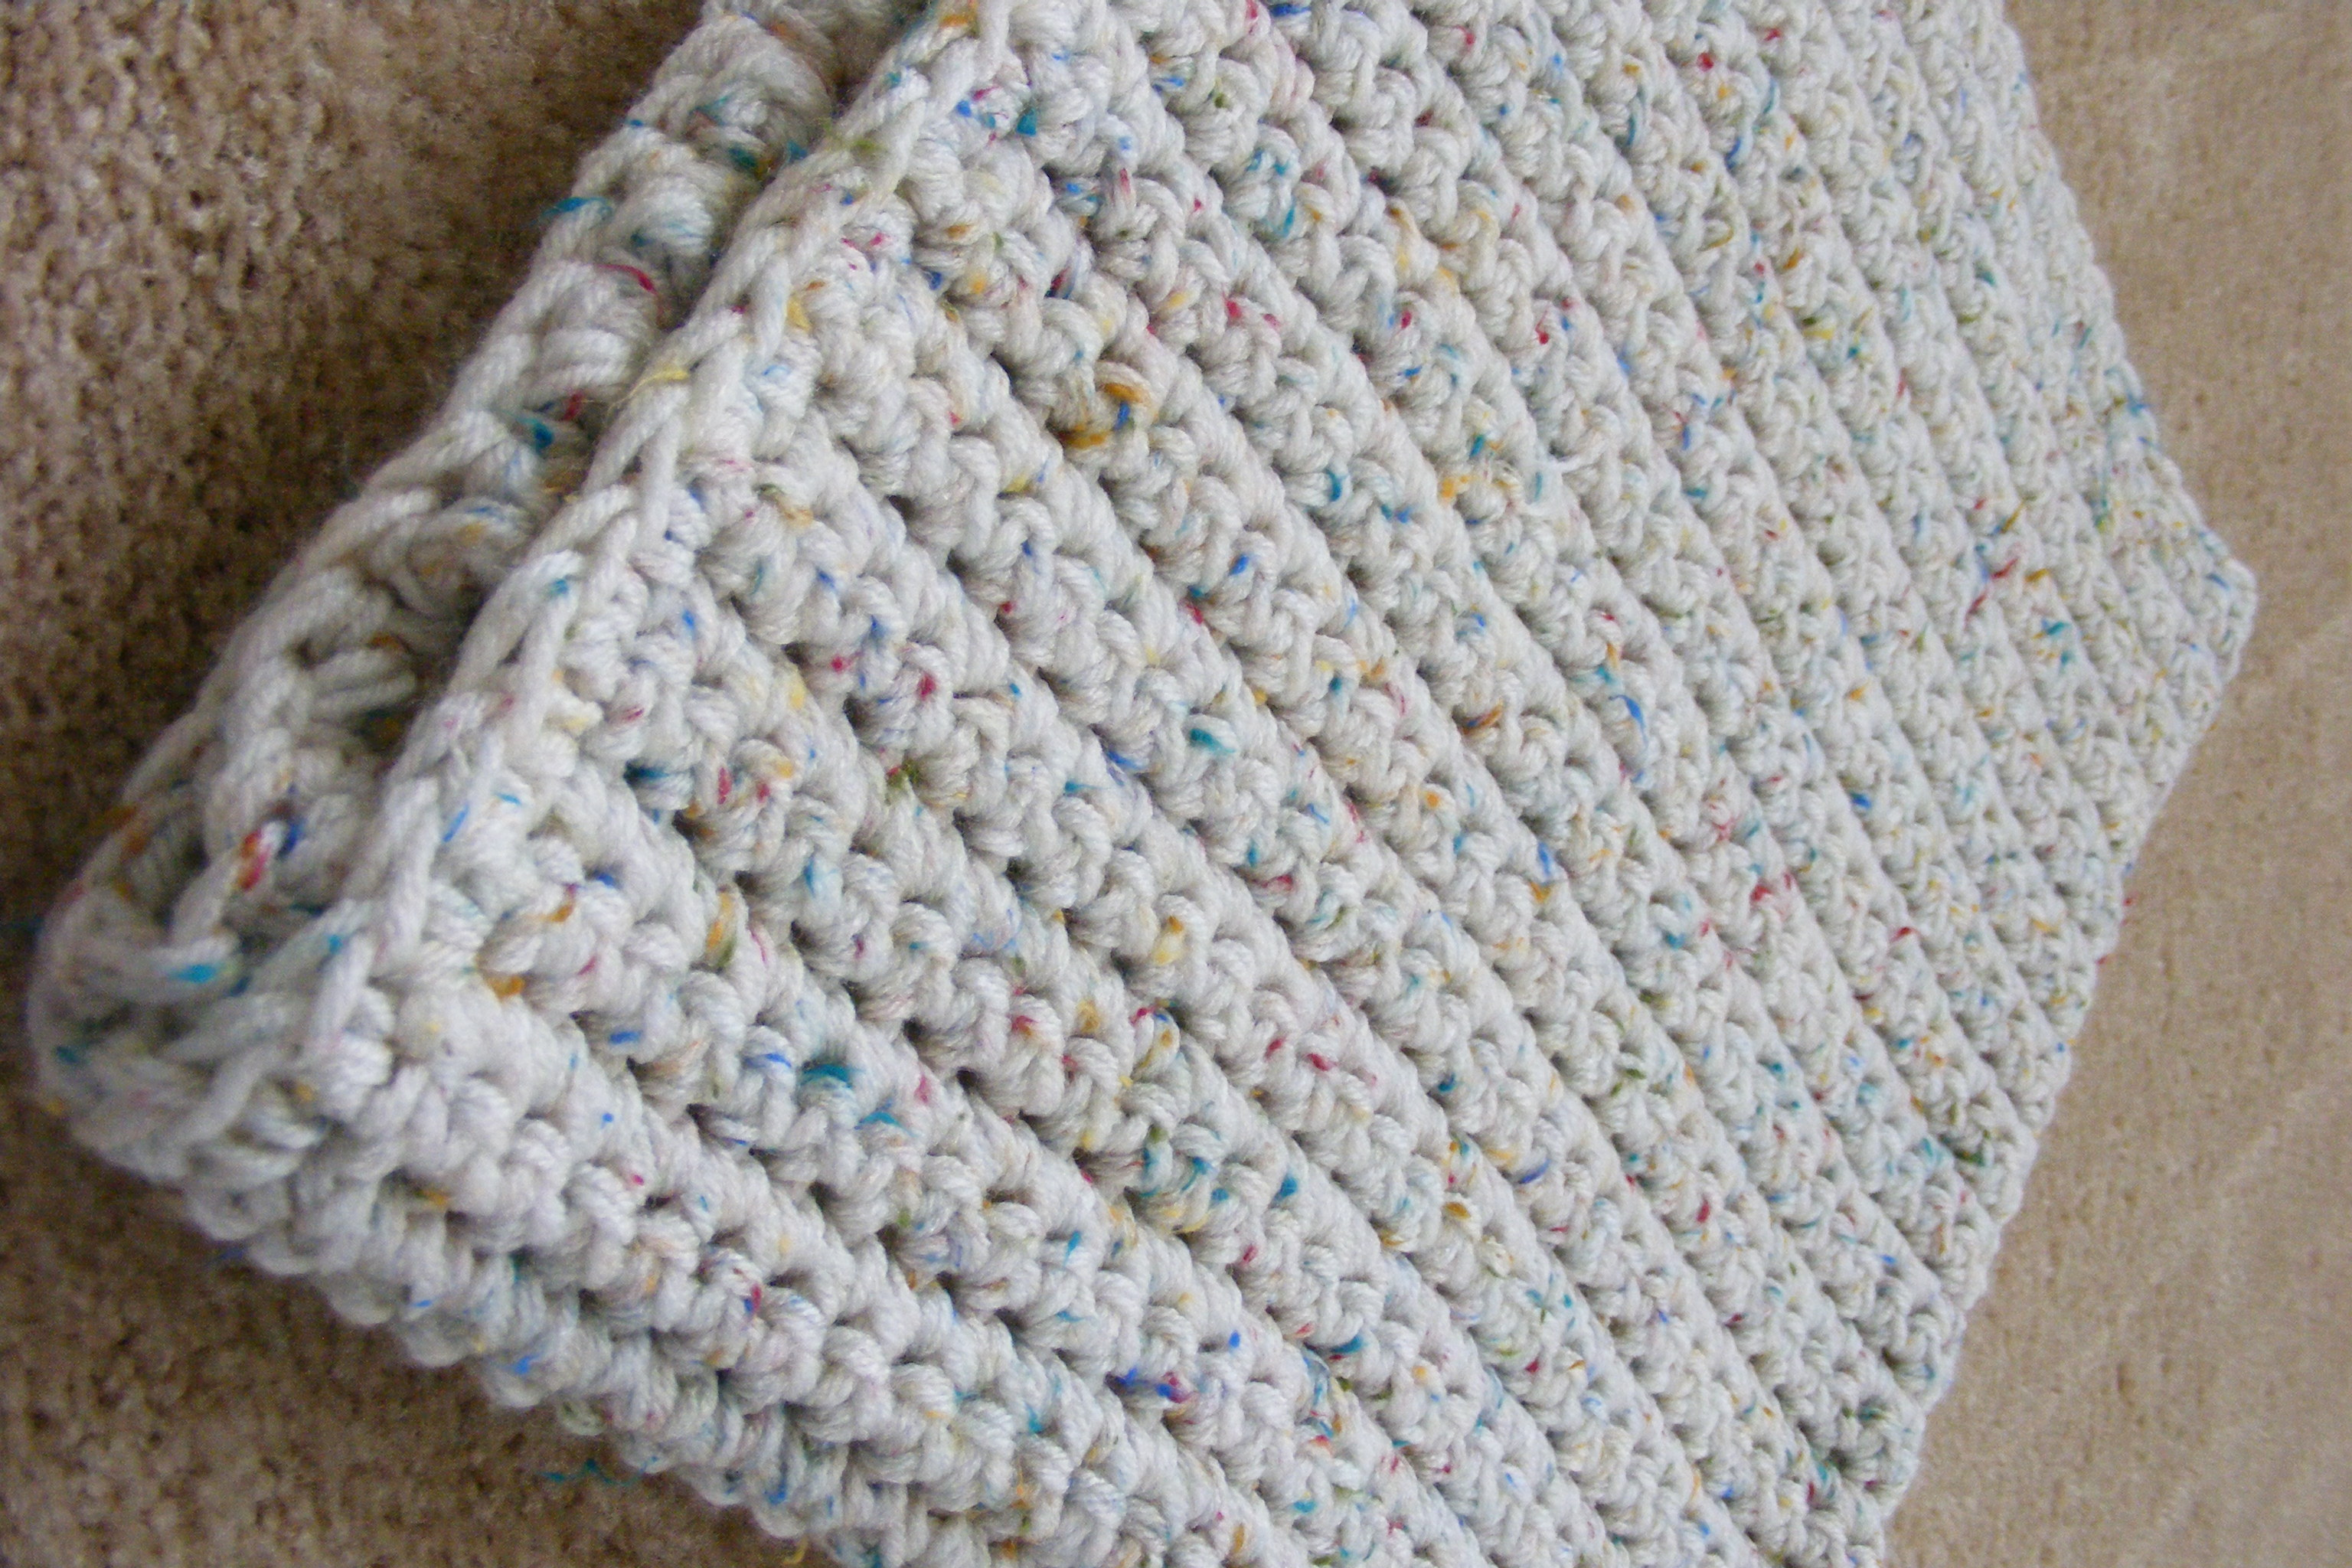 Crochet A Baby Blanket : Free Baby Blanket Crochet Patterns from our Free Crochet Patterns